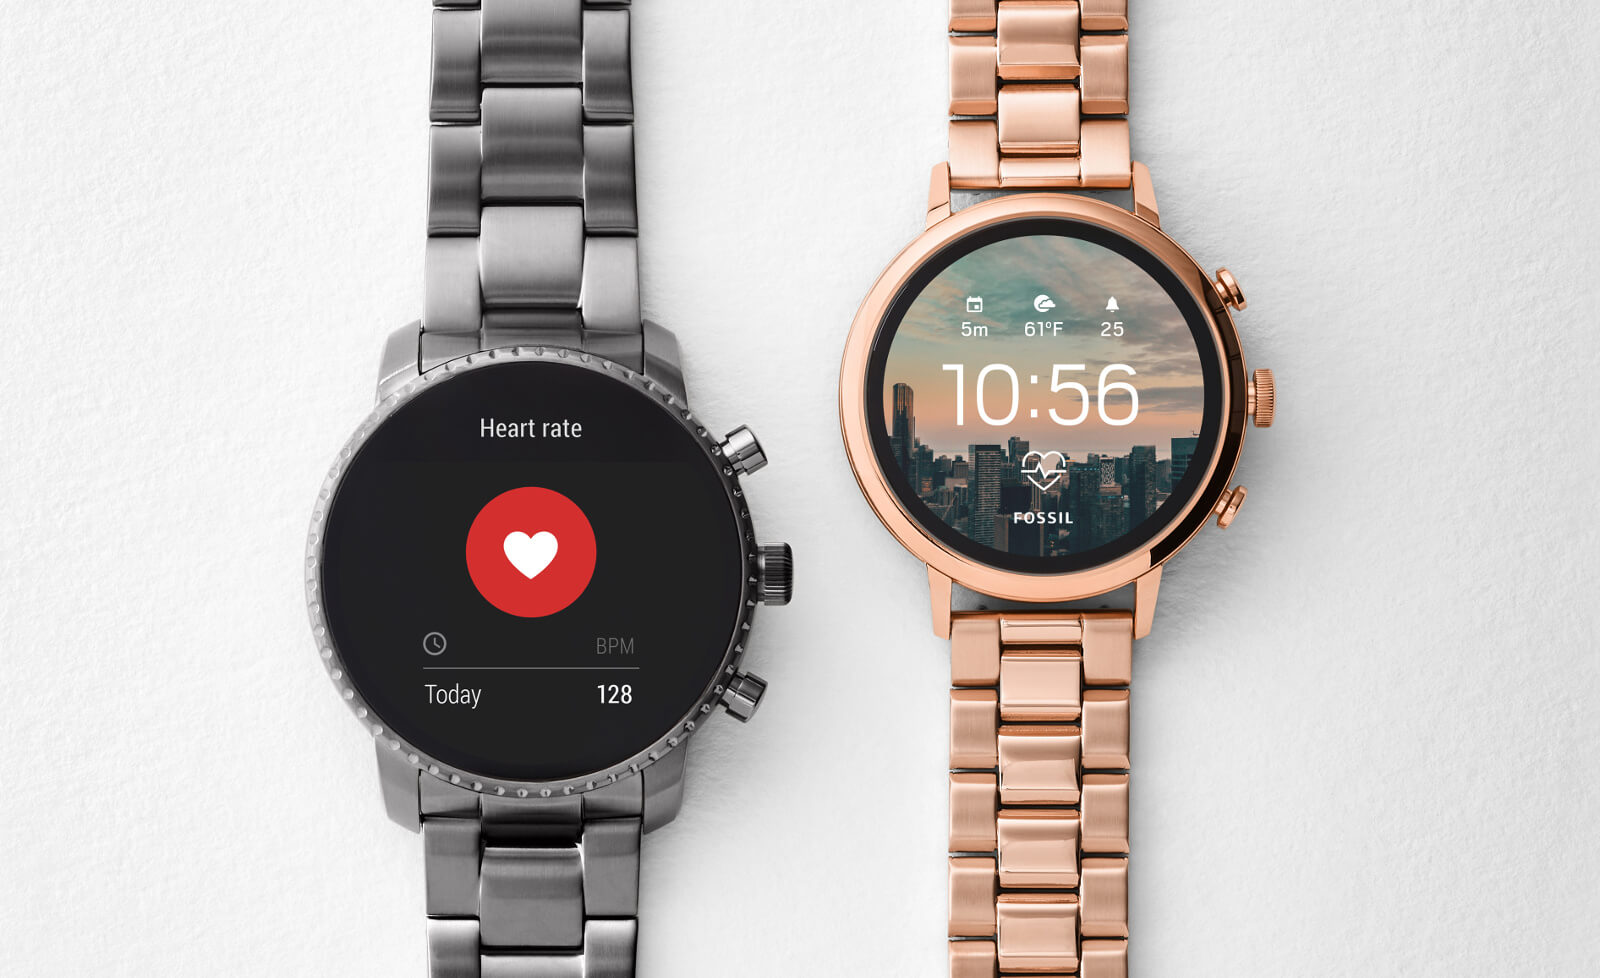 Fossil Launched The Q Venture HR, Q Explorist HR Wear OS Smart Watches